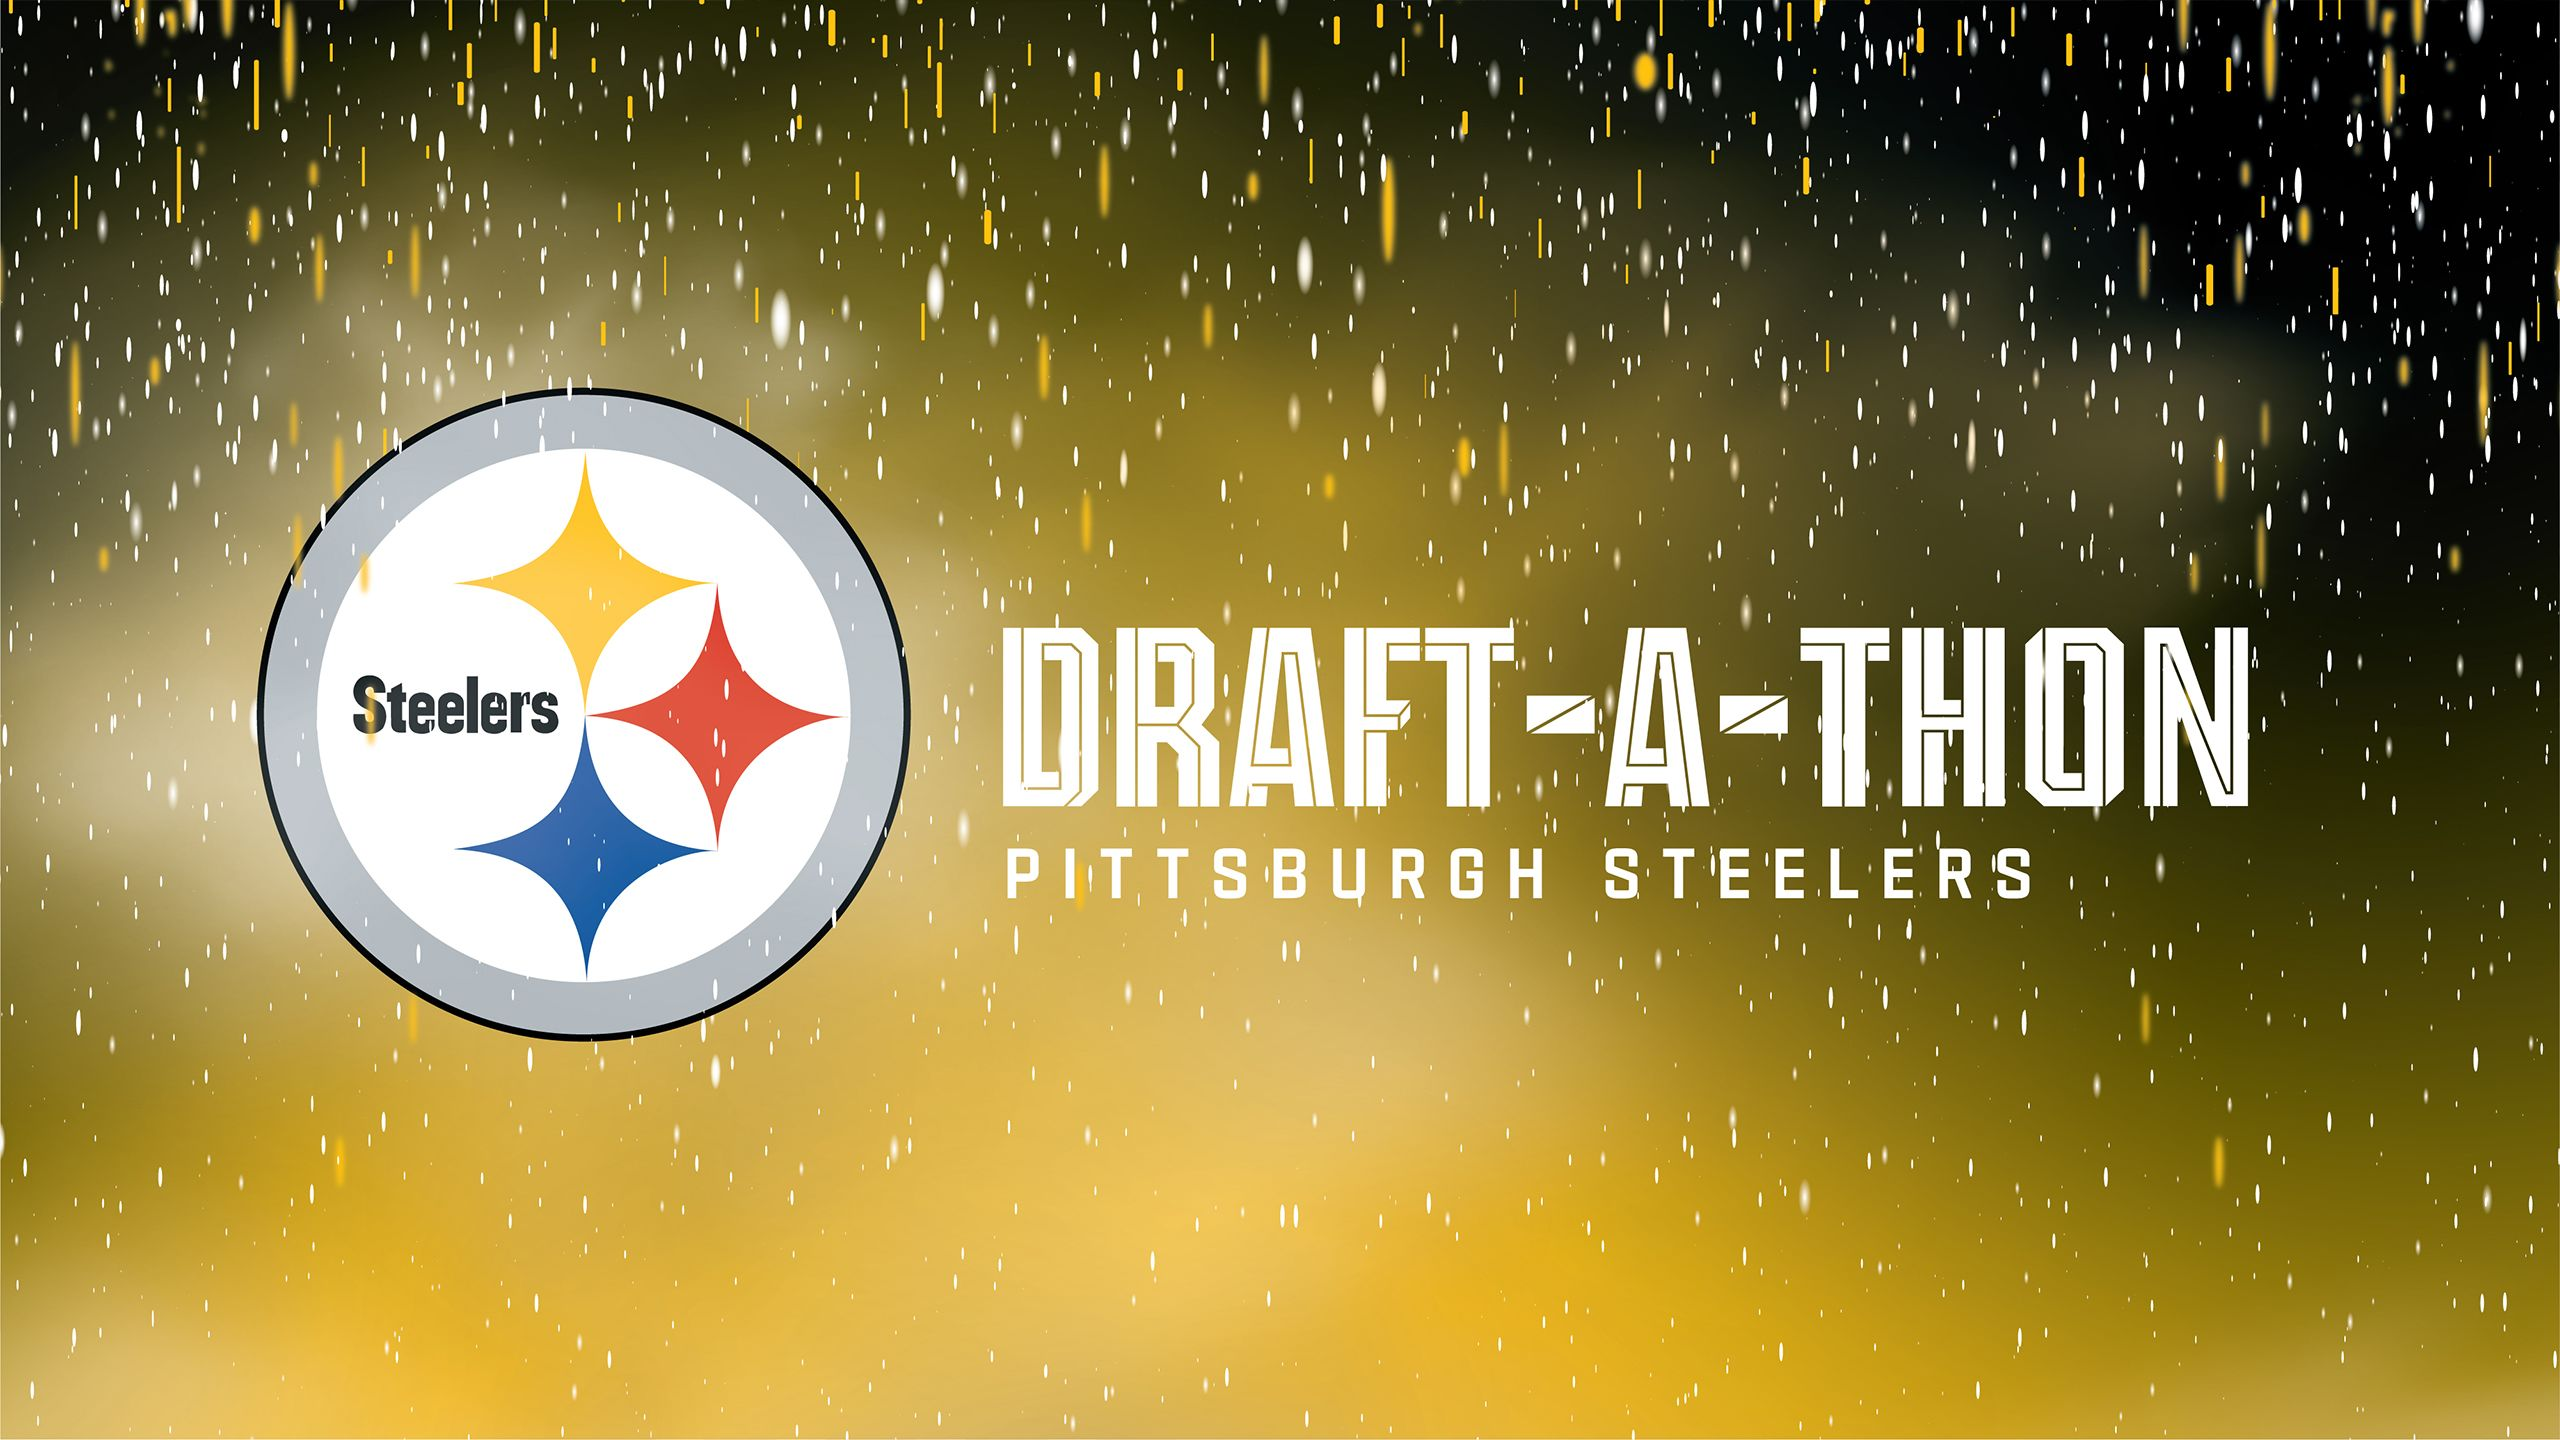 Steelers Draft-A-Thon